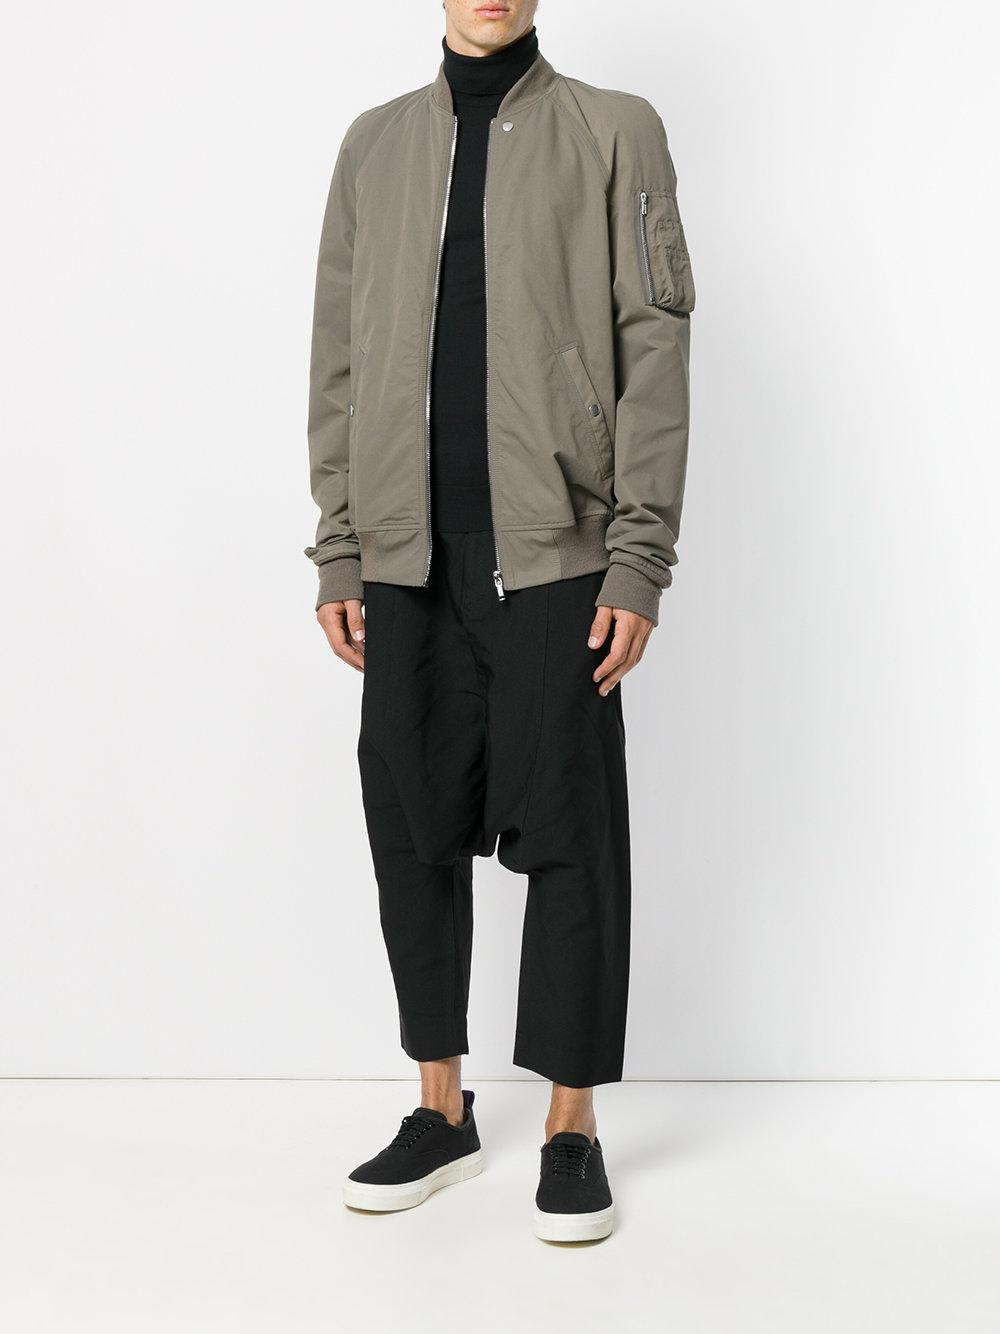 Comme des Garçons Synthetic Drop Crotch Cropped Trousers in Black for Men